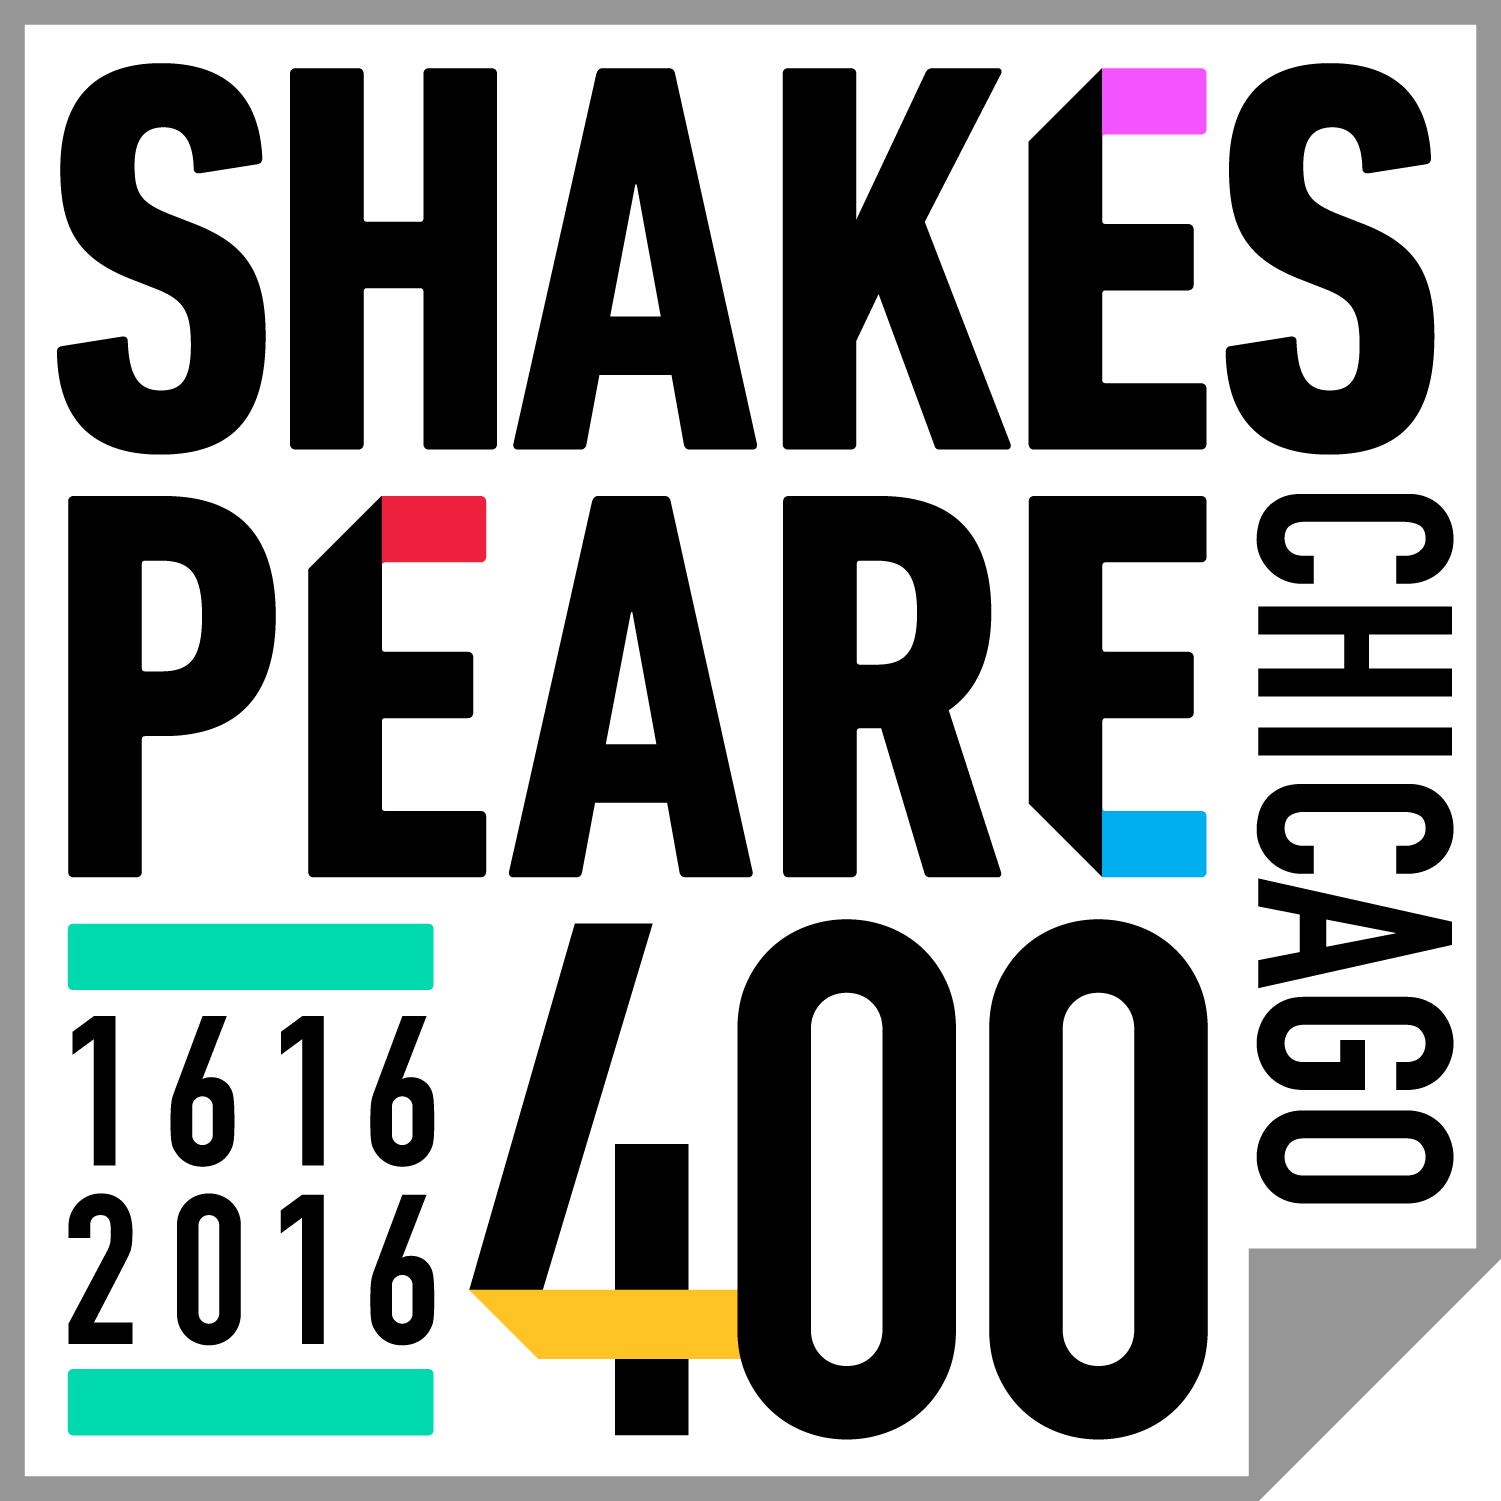 Shakespeare 400 logo